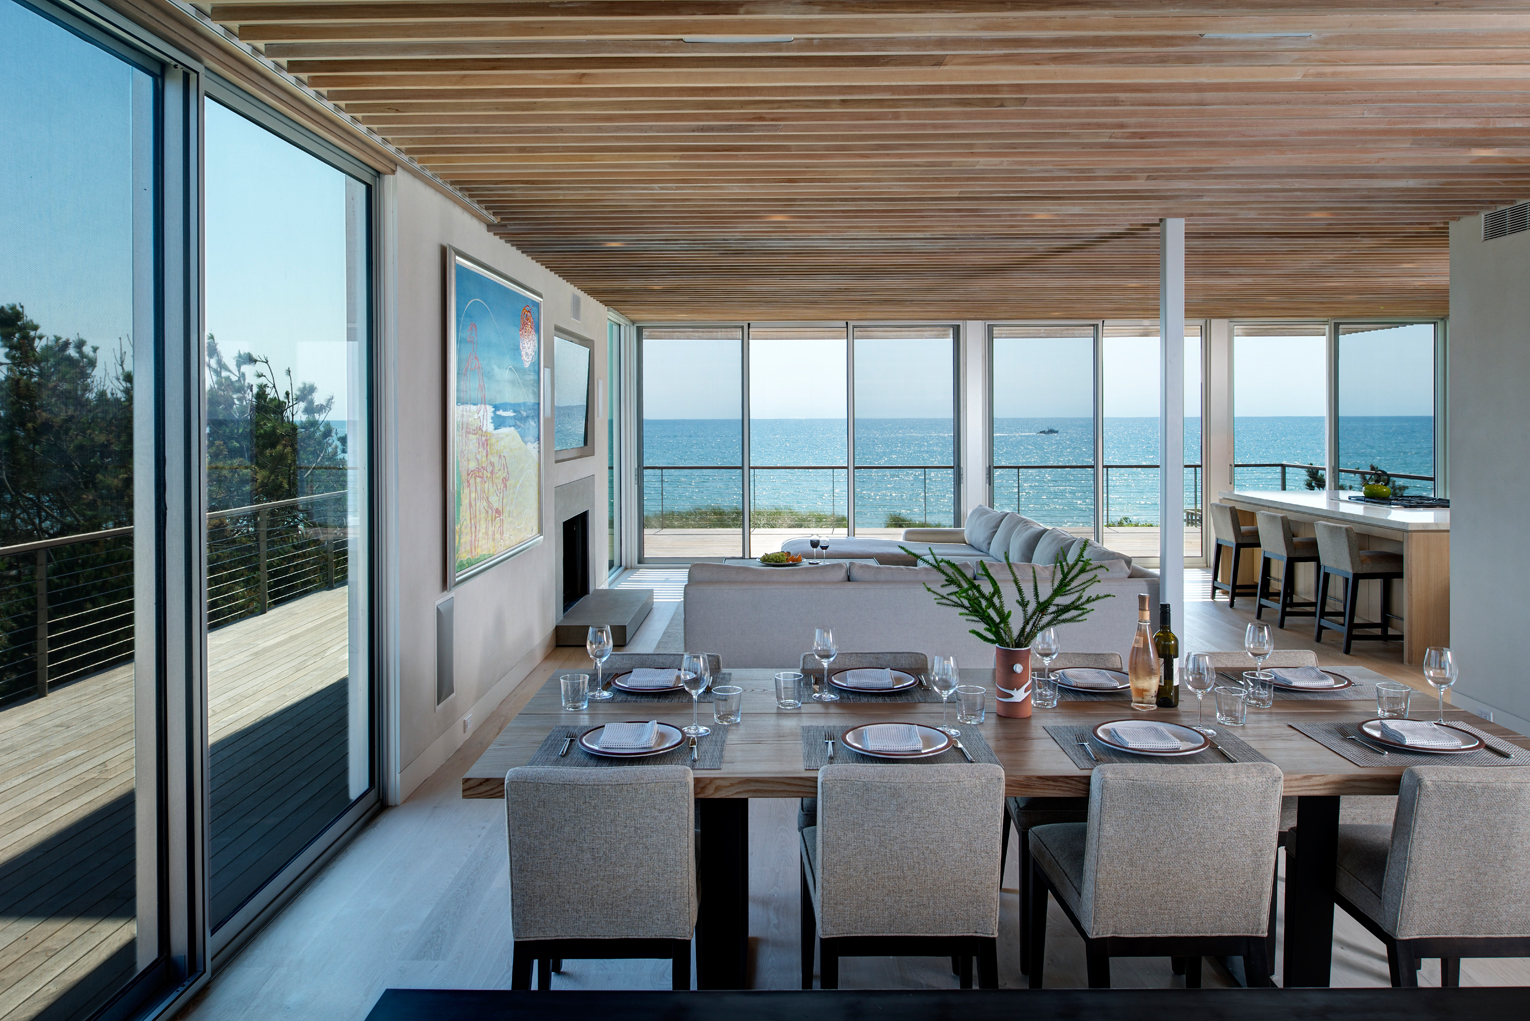 Seaside residence dining by Stelle Lomont Rouhani Architects